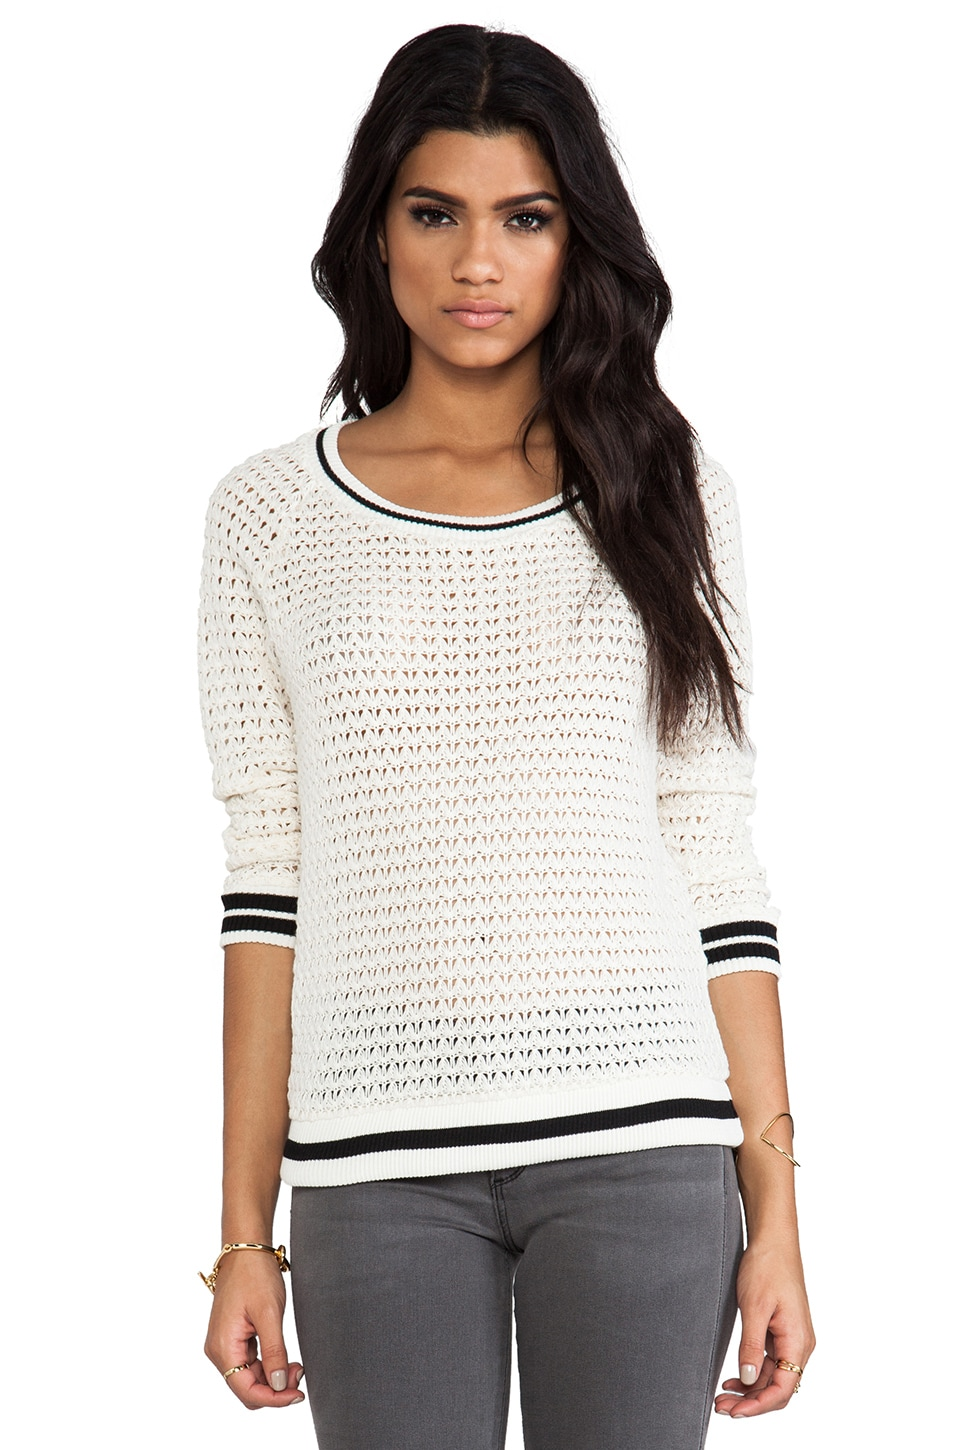 Ella Moss Millie Sweater in Natural